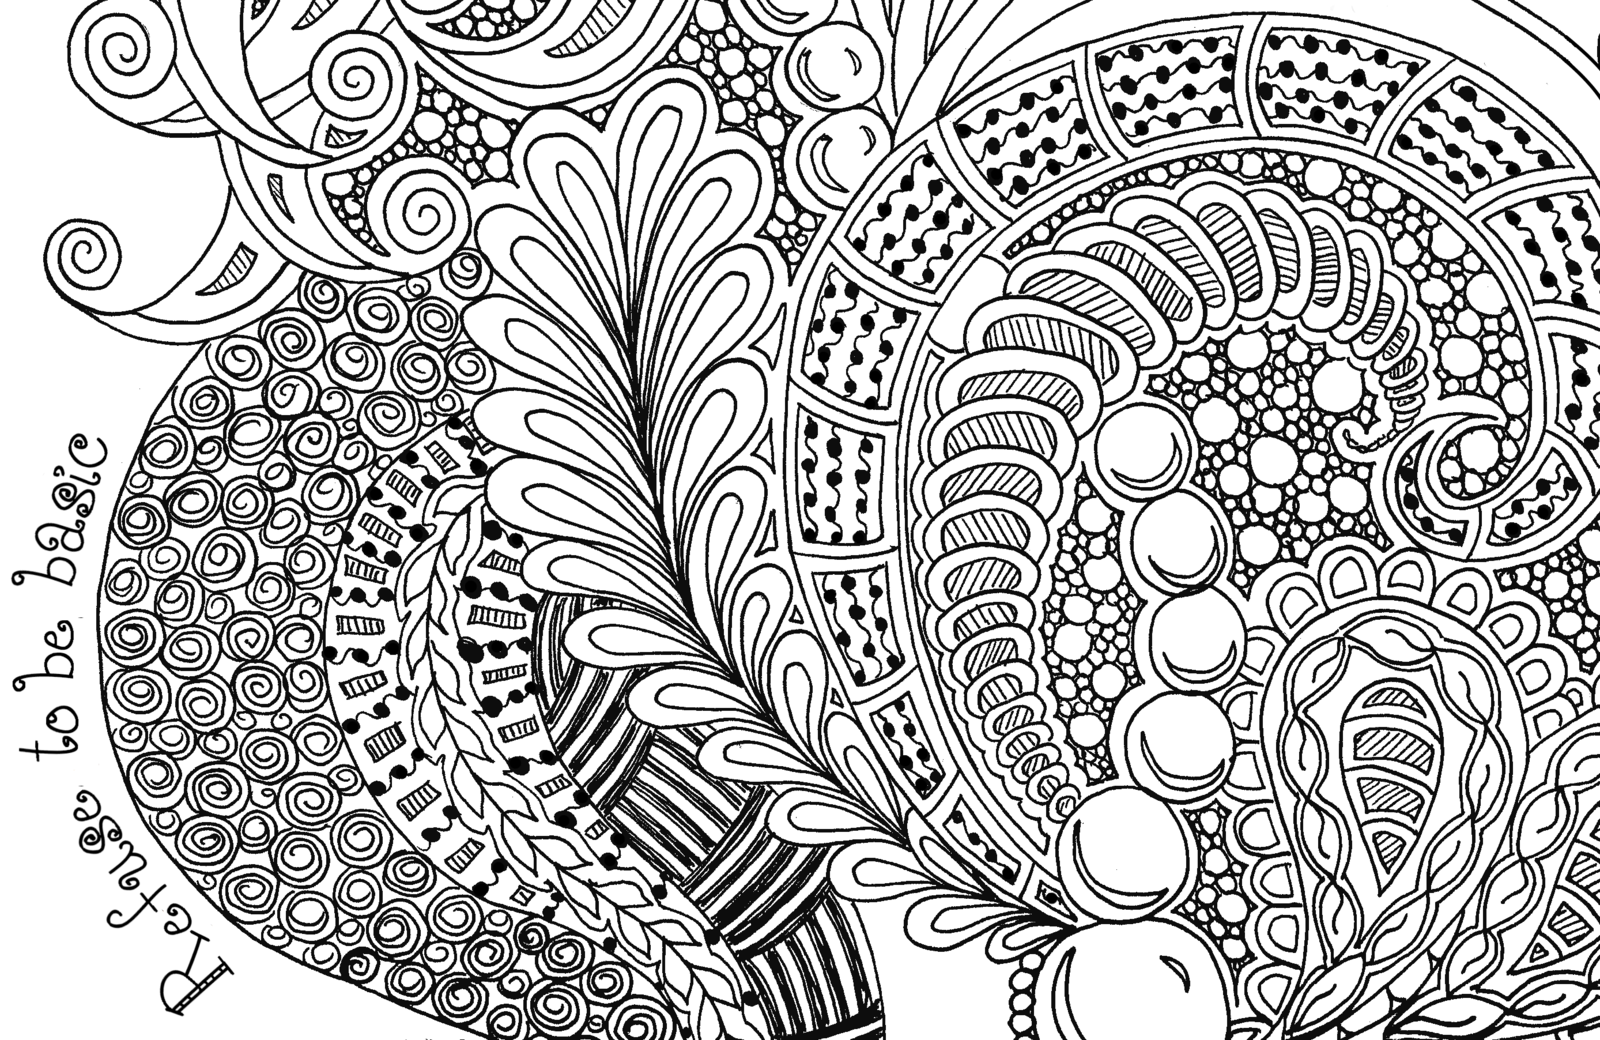 zentangle coloring pages free printable zentangle coloring pages elephant ethnic zentangle coloring printable free pages zentangle